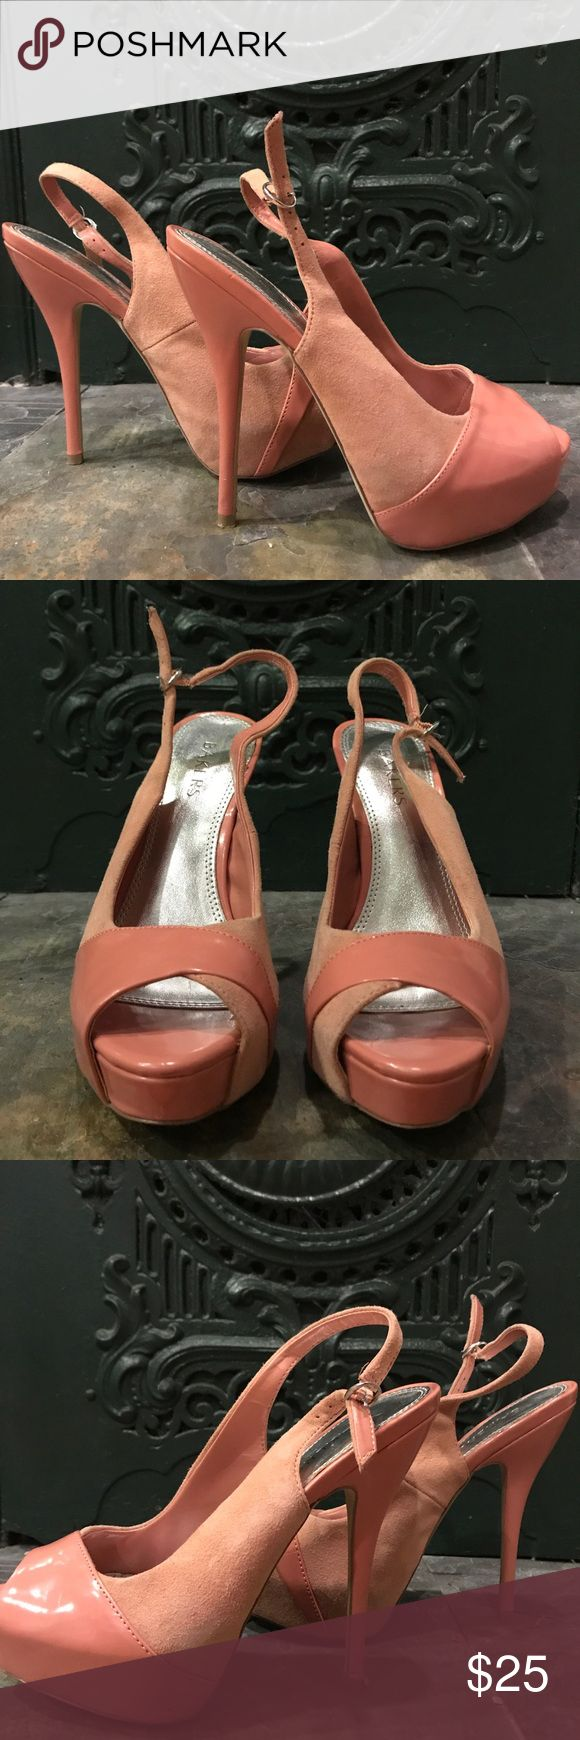 Classic Peep Toe Pumps Bakers Mystique slingback classic peep toe pump. Sued and patent leather combo. Excellent coral color. Bakers Shoes Heels